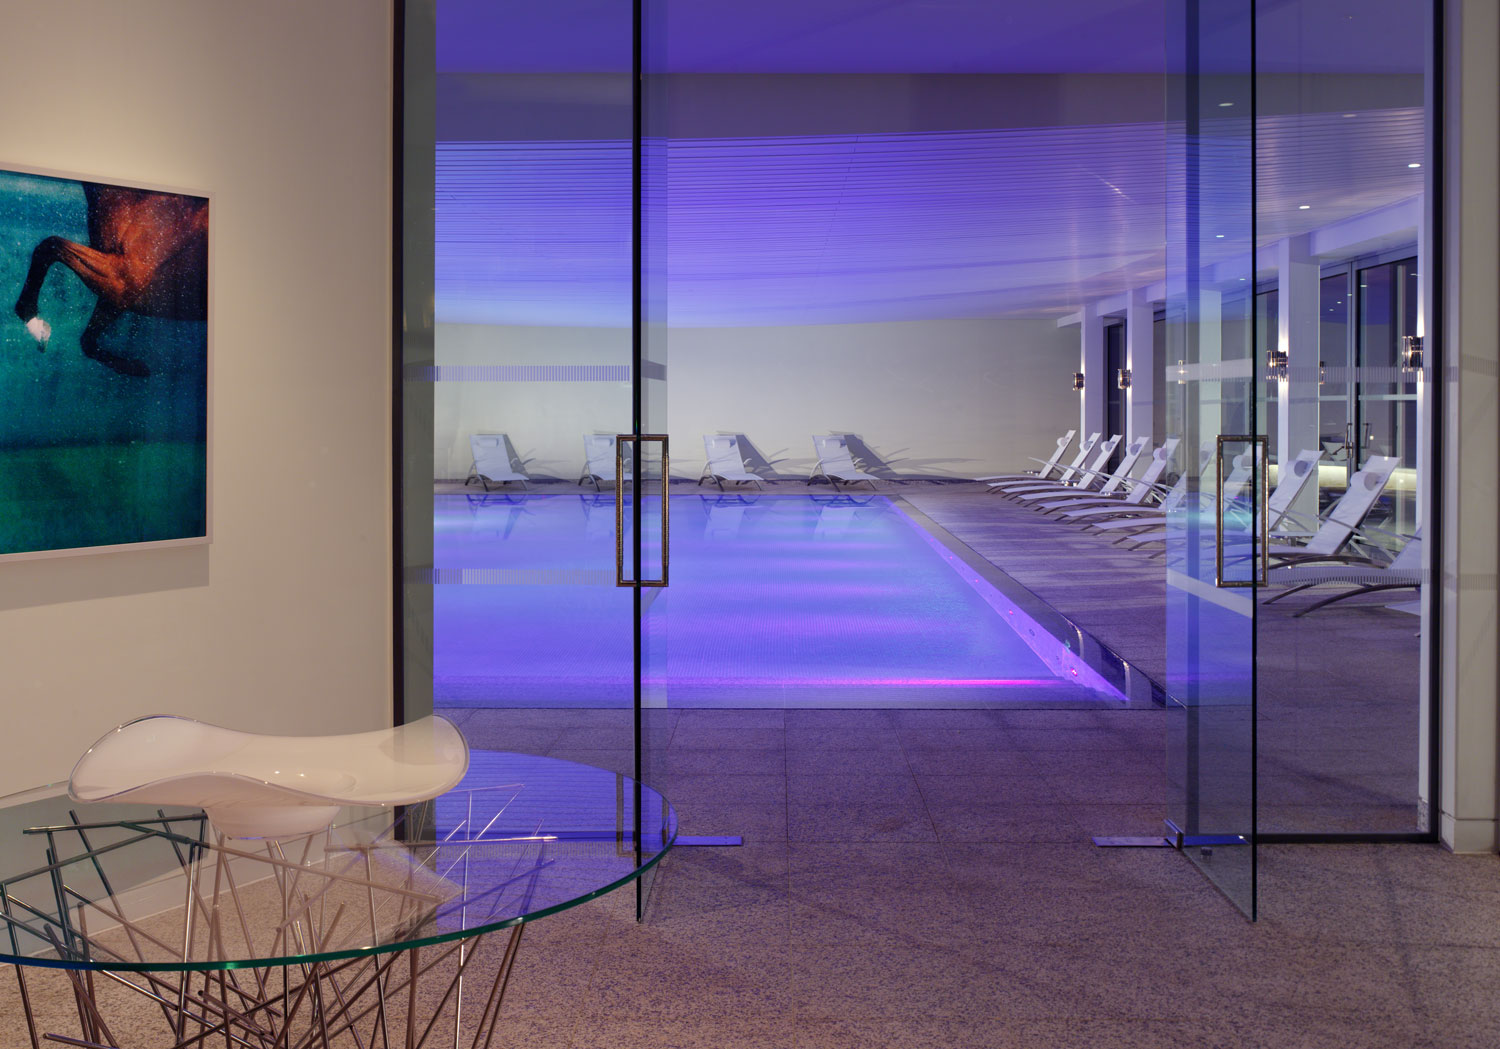 The swimming pool at the Coworth Park Spa